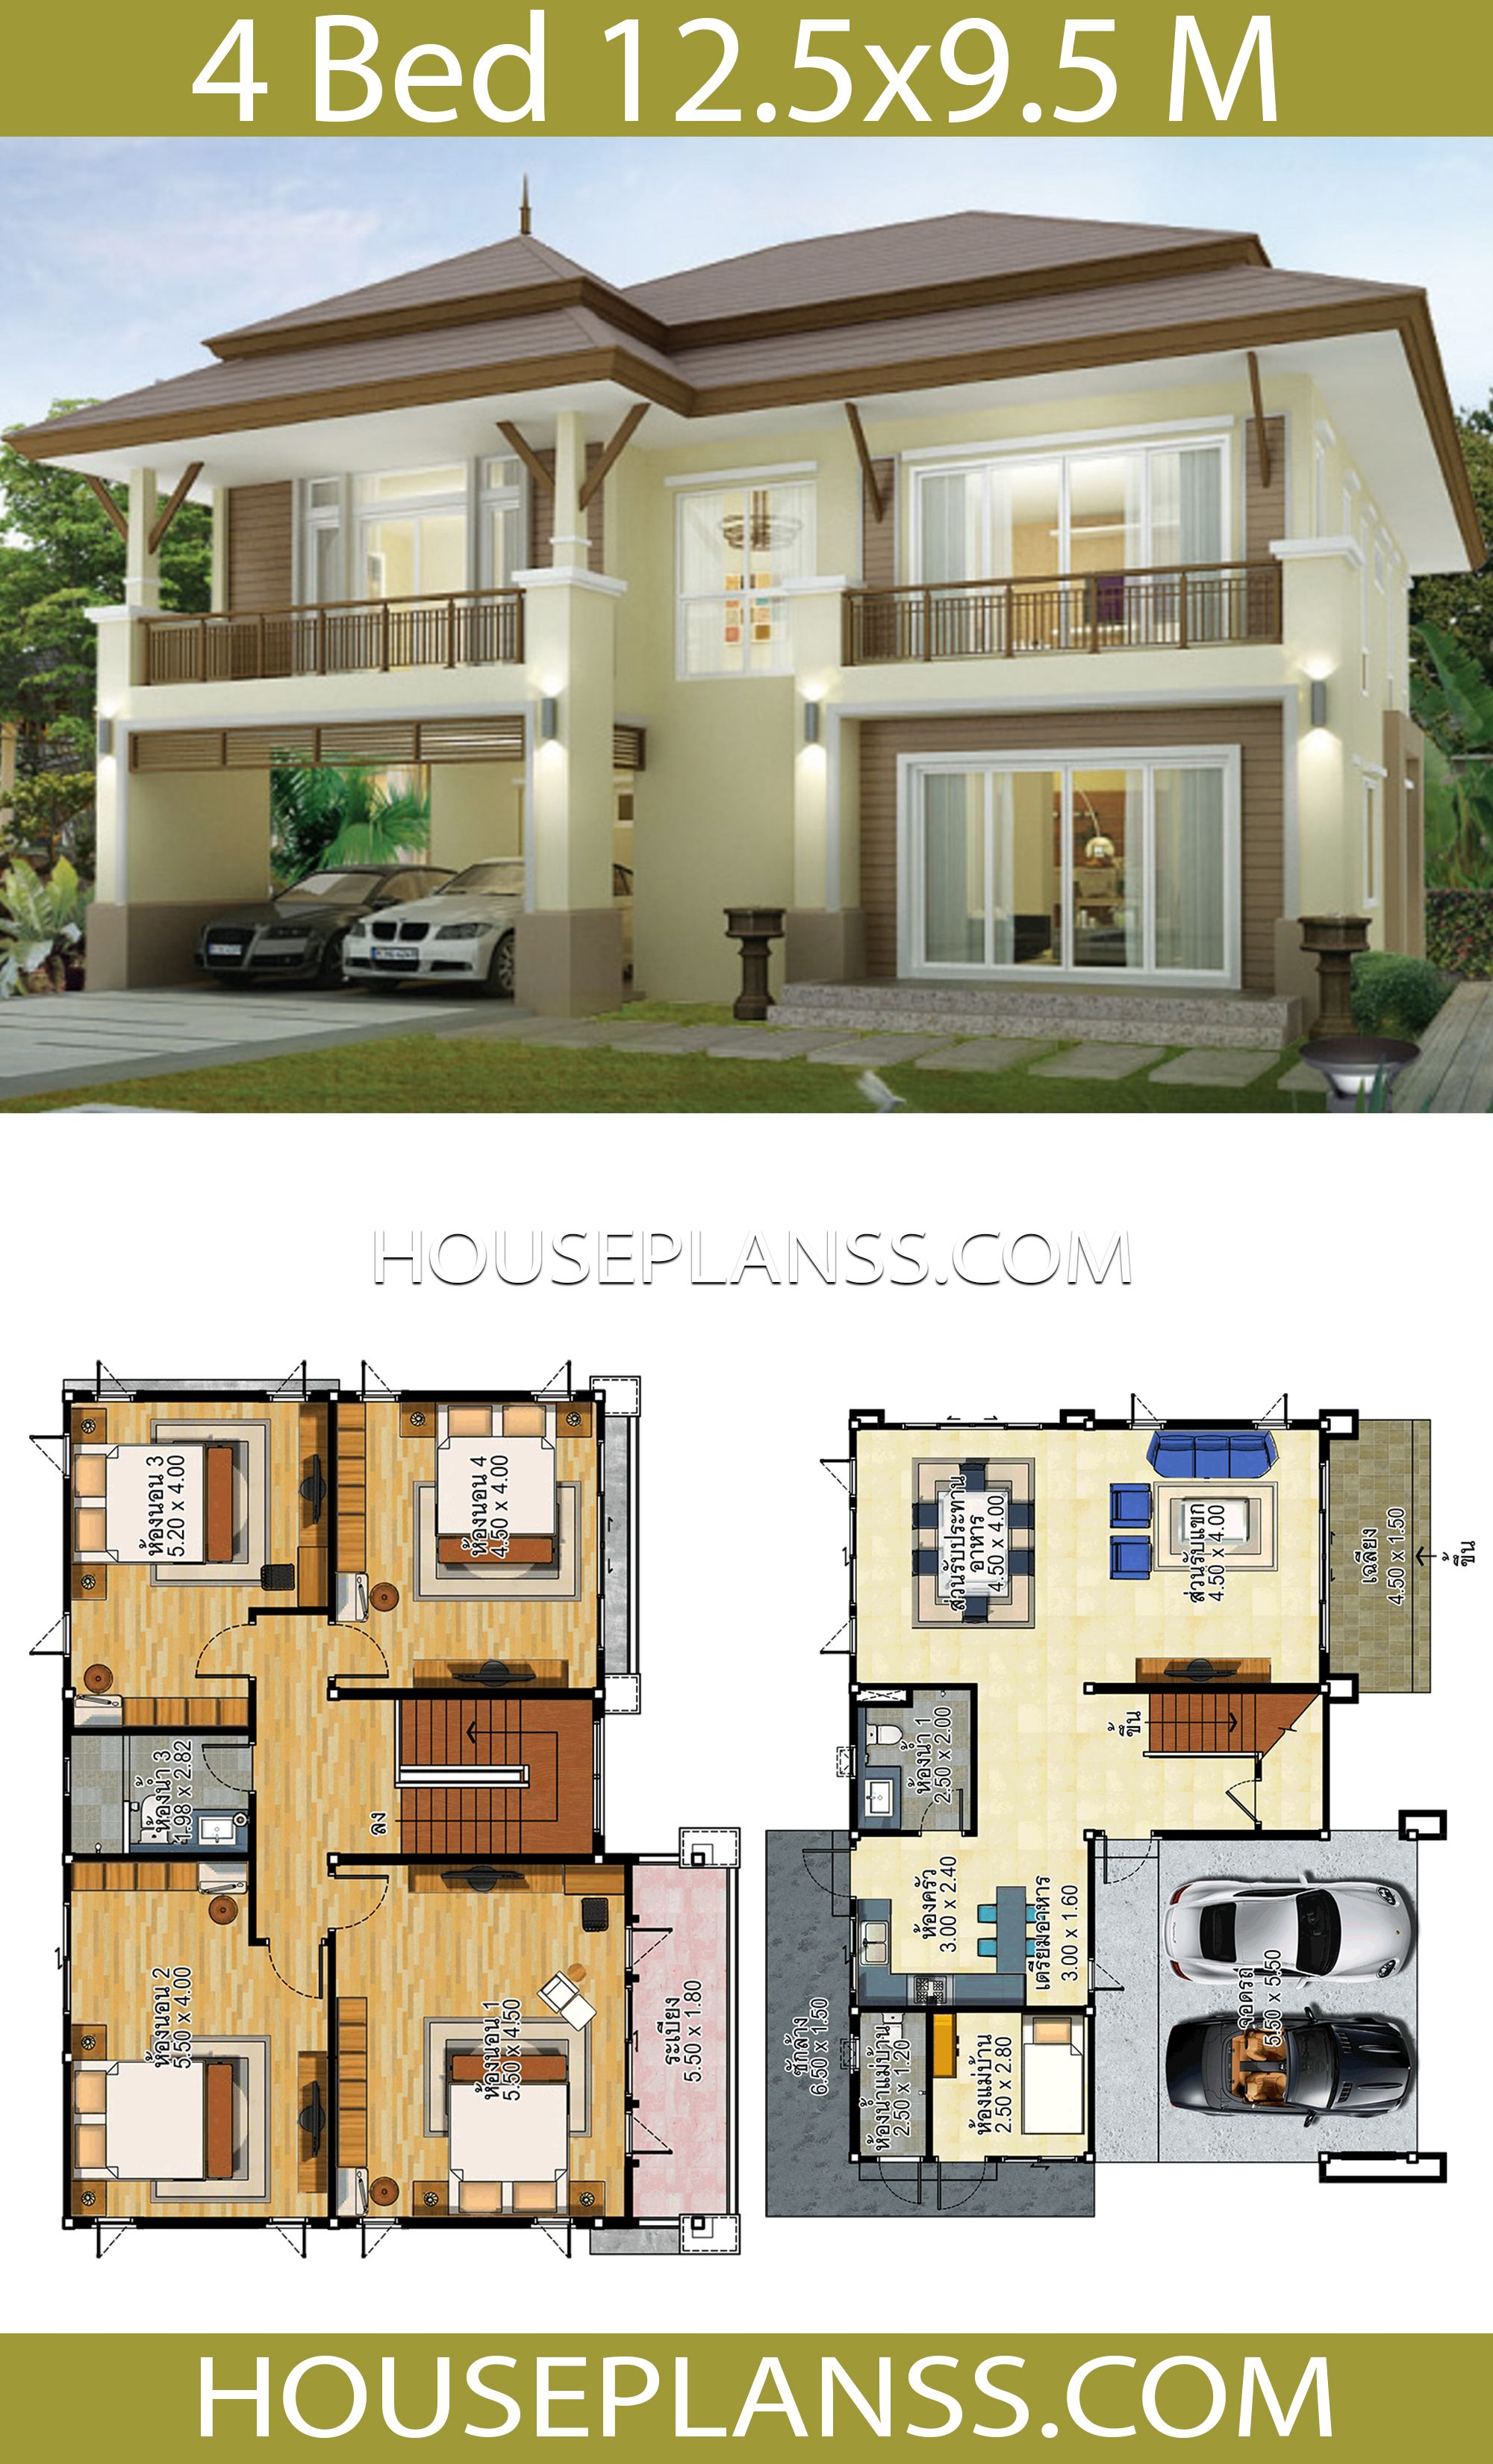 House Design Idea 12 5x9 5 With 4 Bedrooms House Plans 3d In 2020 Modern House Design Home Building Design Model House Plan